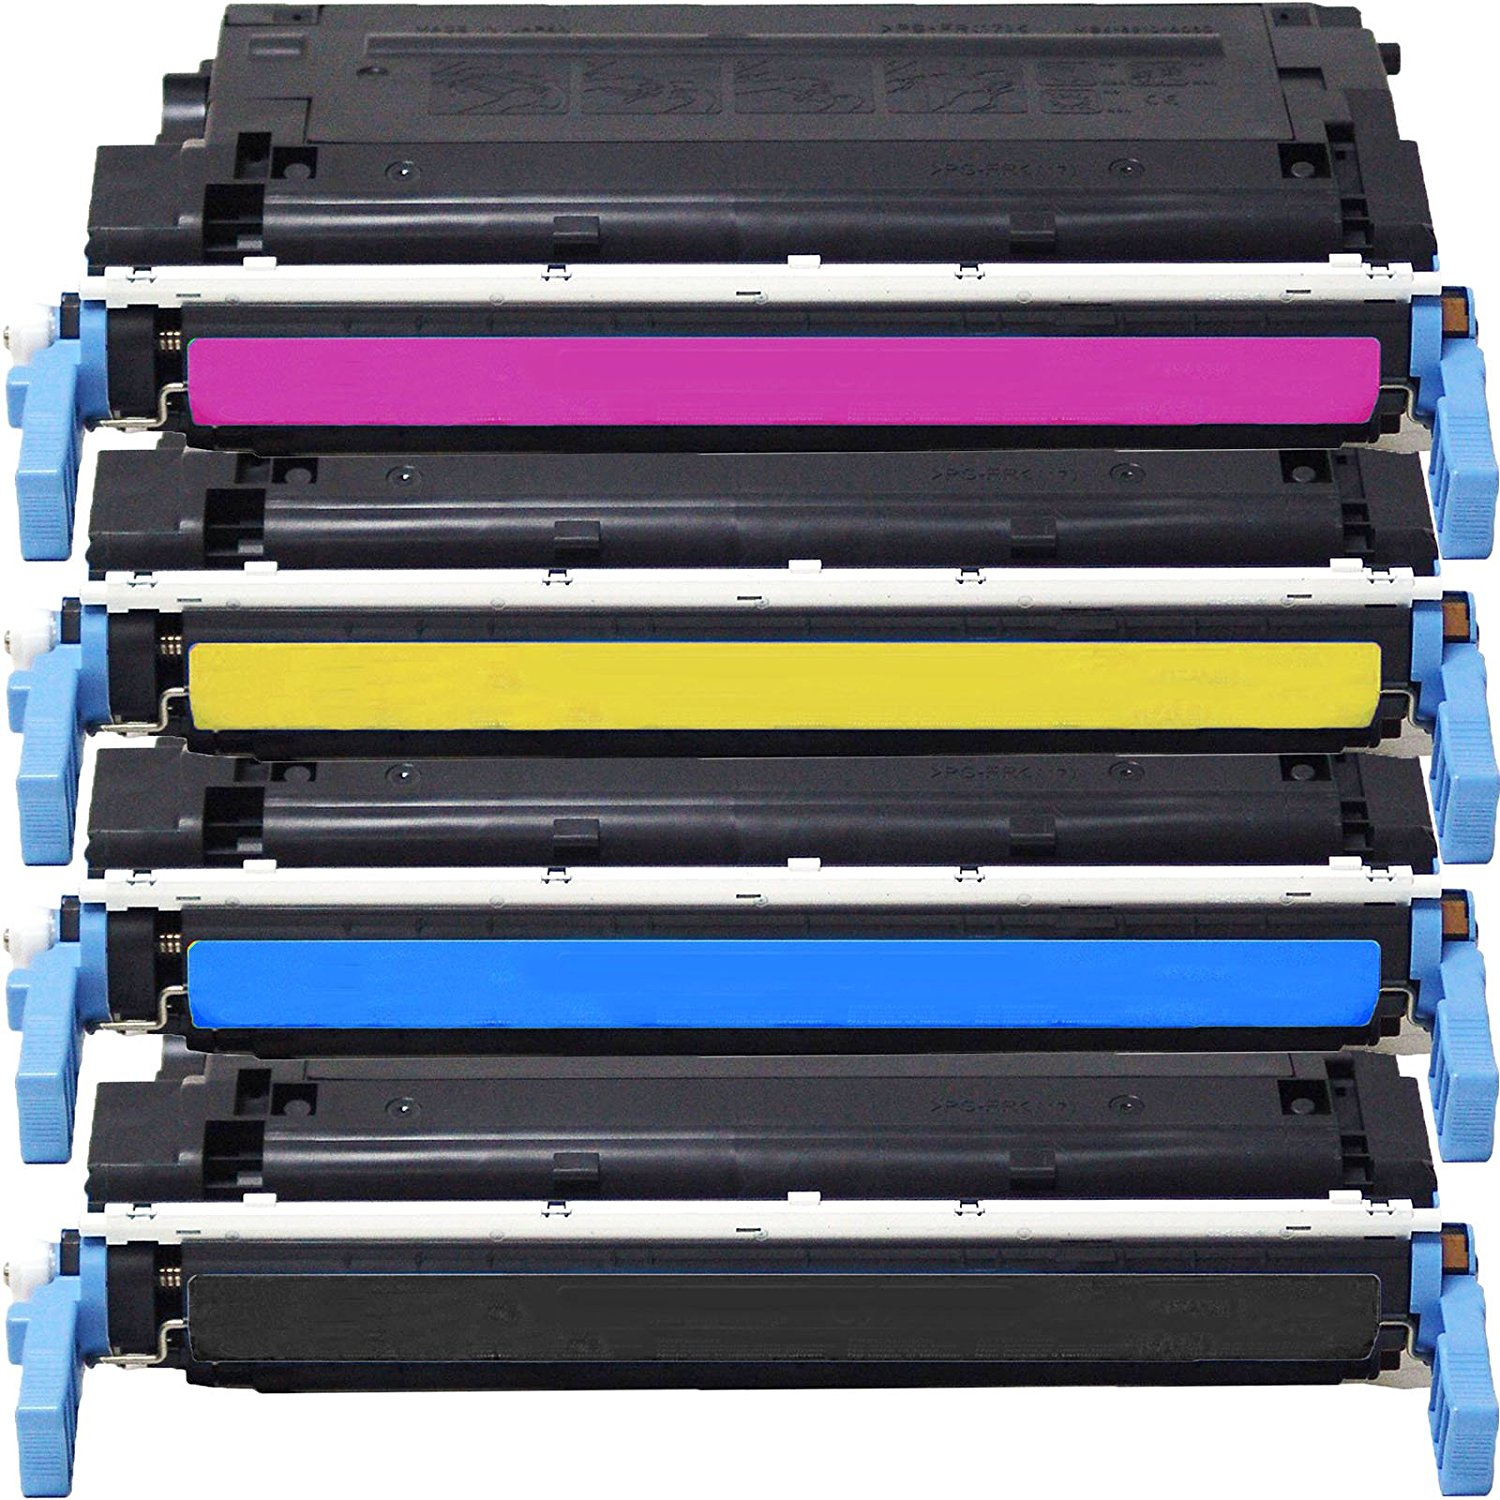 C9721X Toner Eagle Re-Manufactured 4-Color Jumbo Toner Cartridge Compatible with HP Color Laserjet 4600 4600dn 4600dtn 4600hdn 4600n 4610 4610n C9720X C9722X and C9723X.